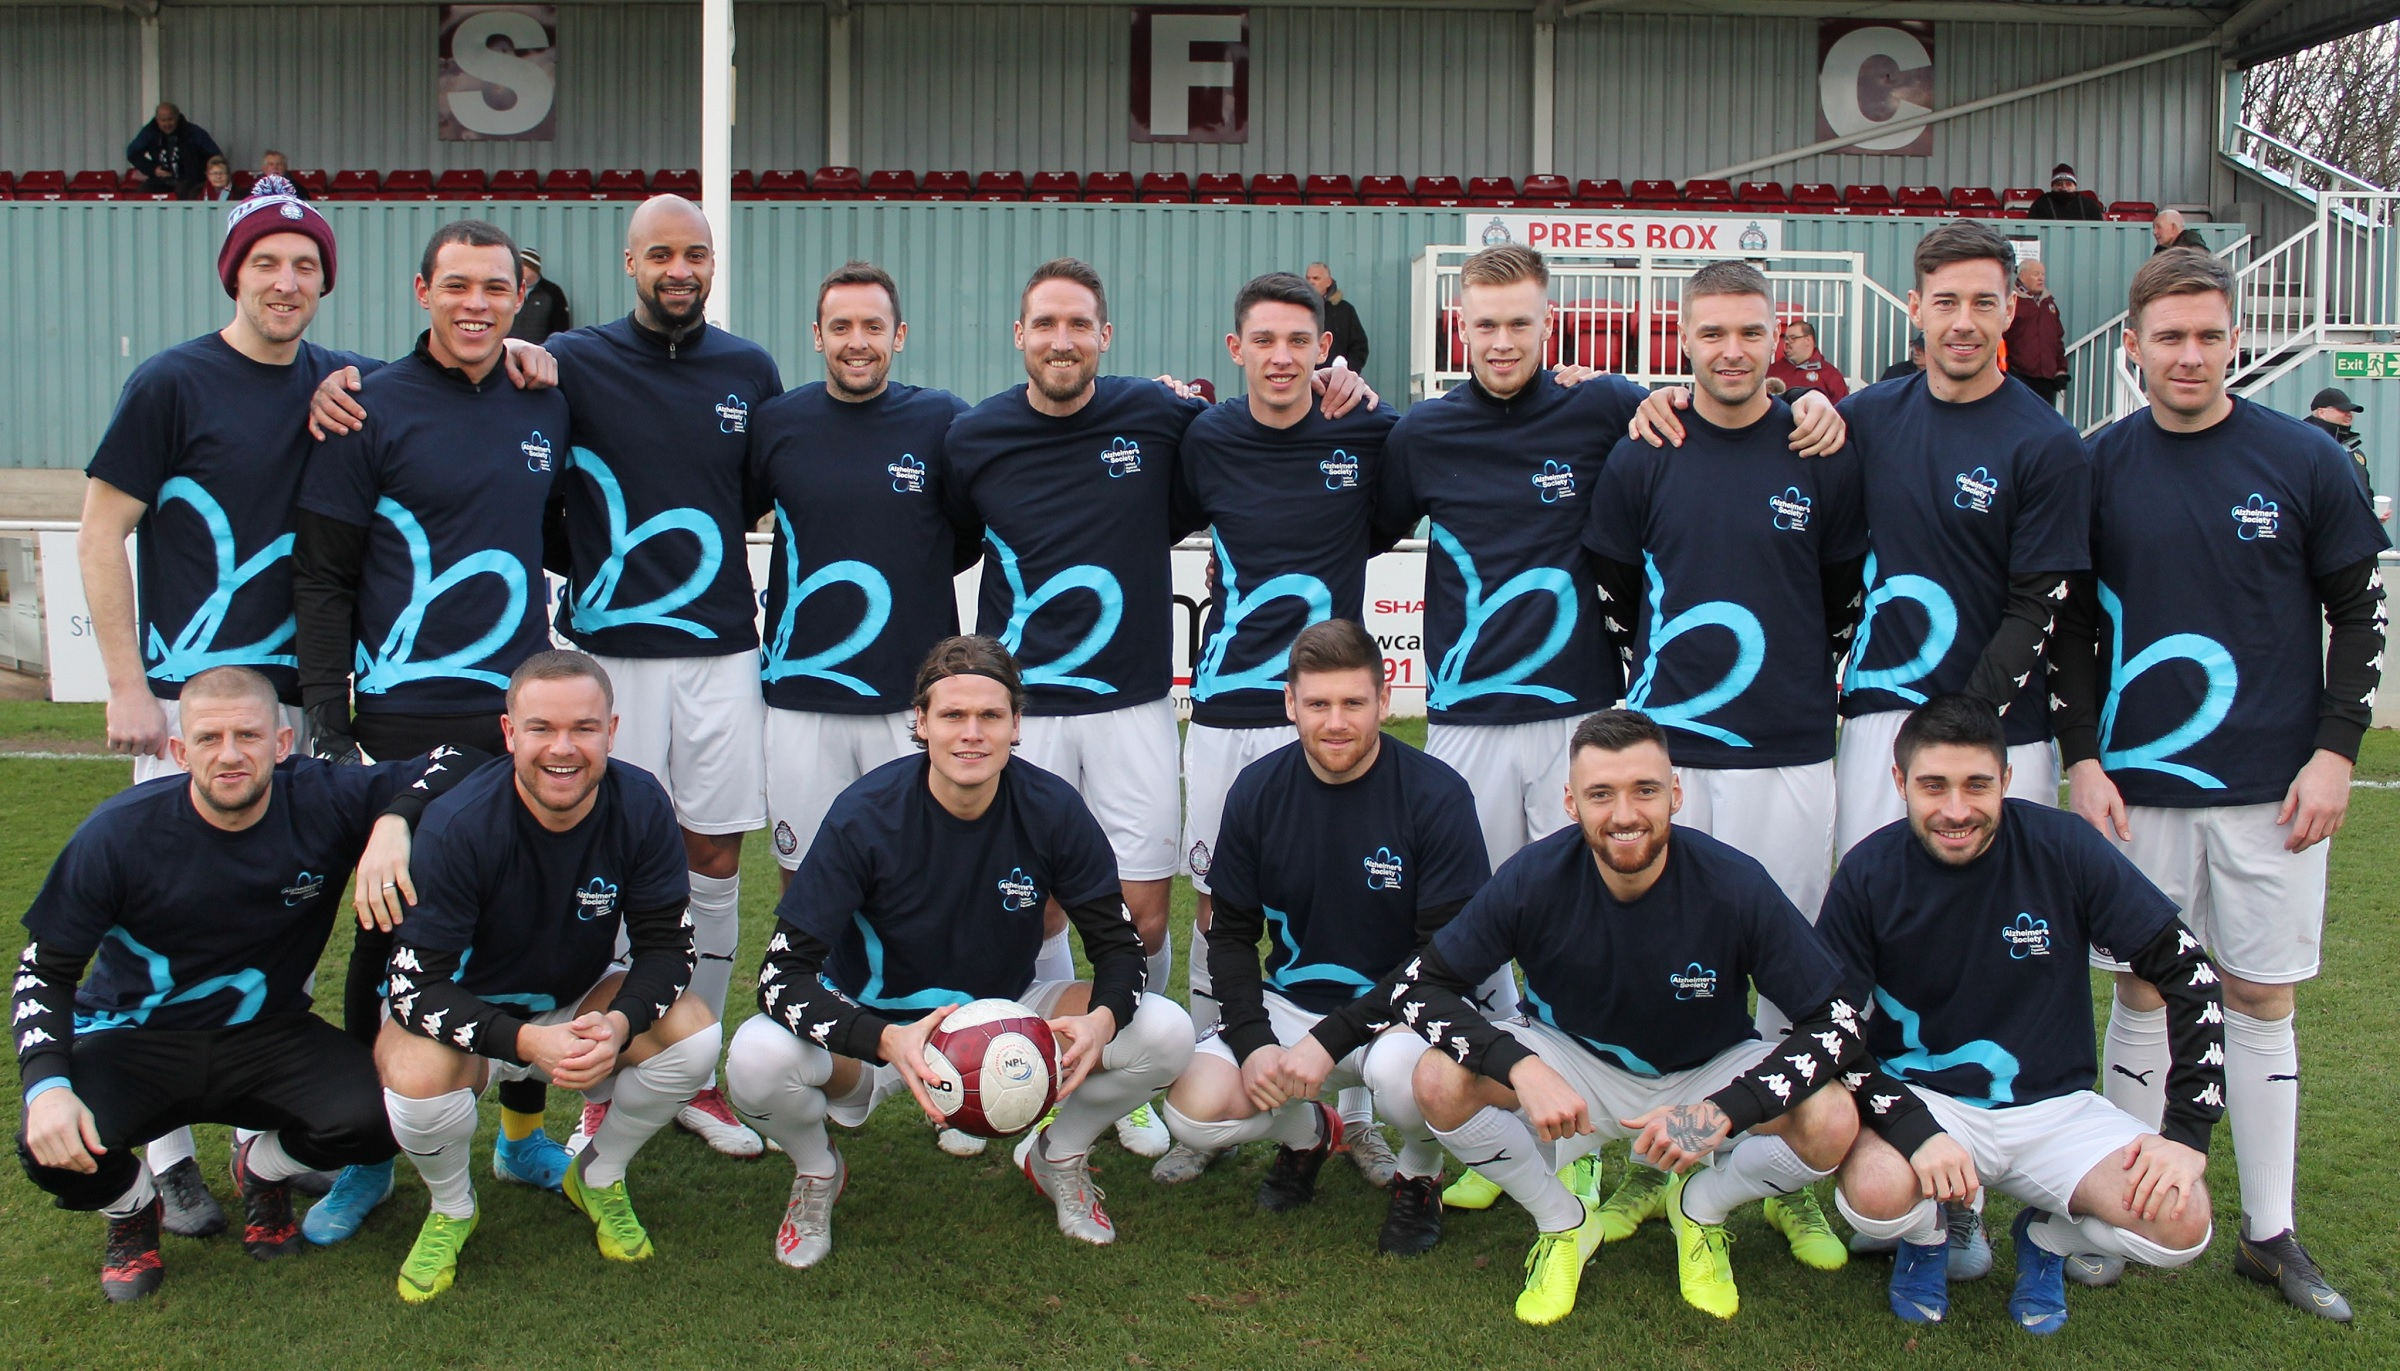 Mariners show support for fight against dementia